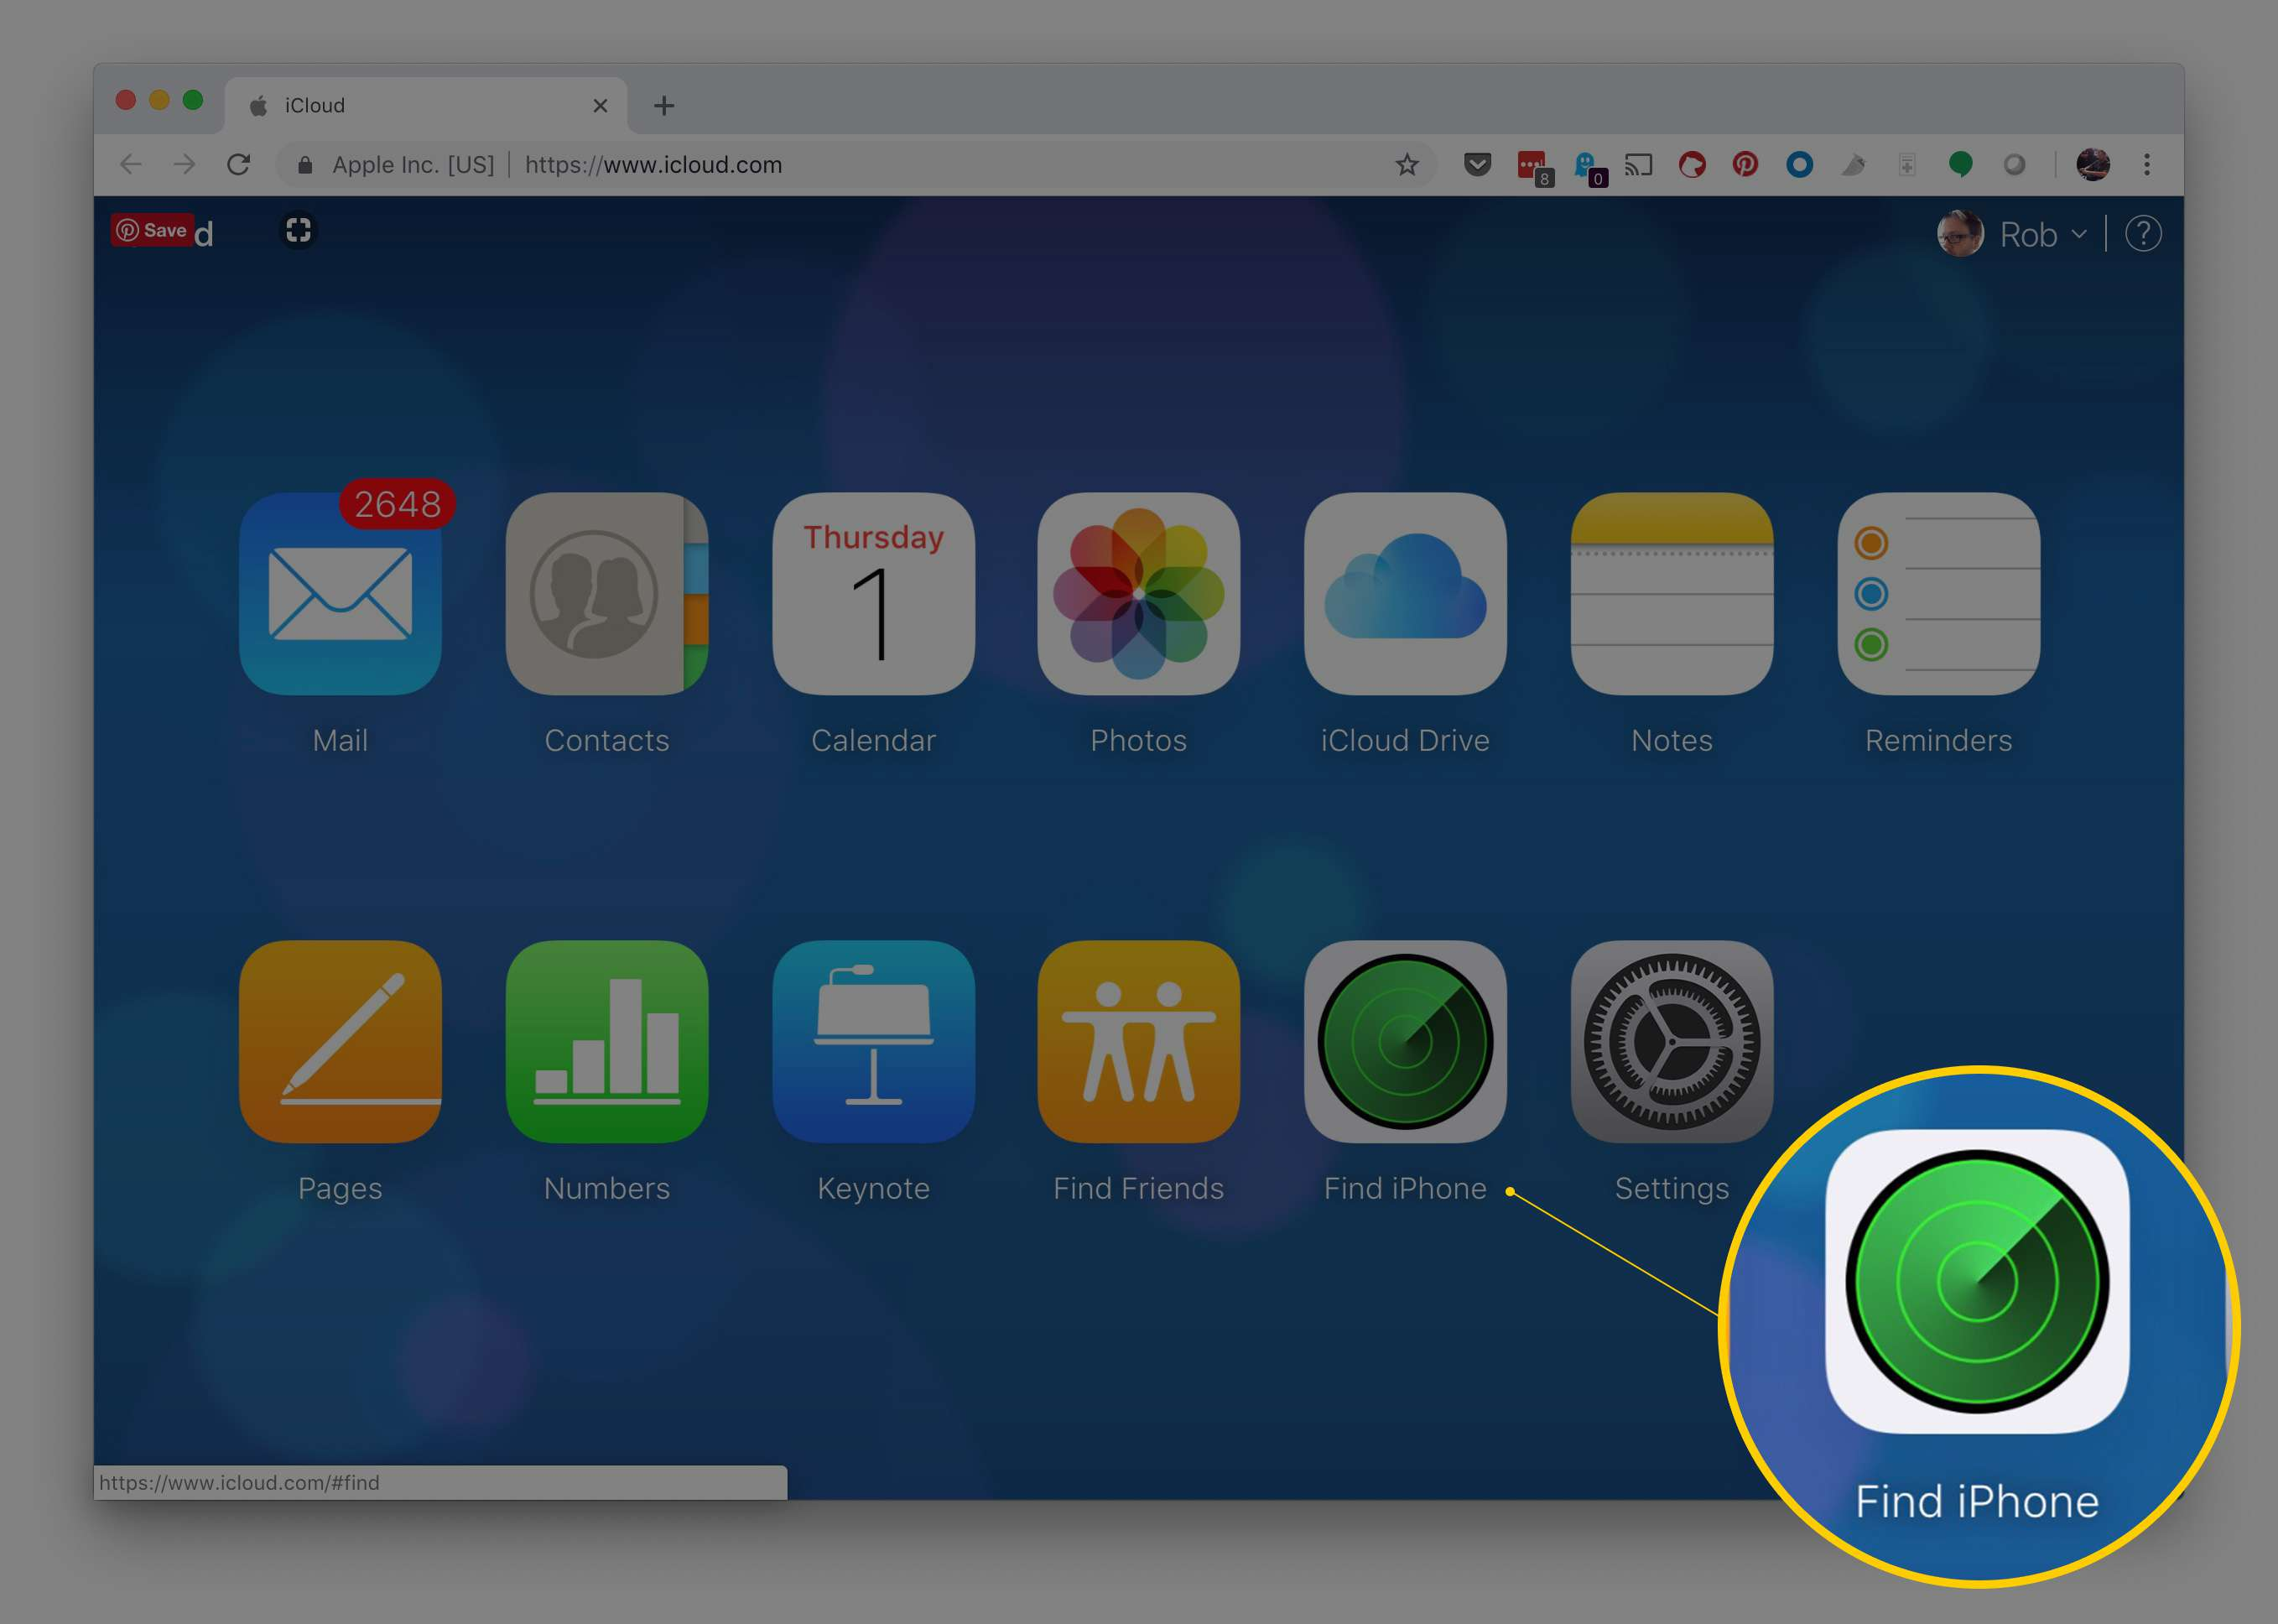 Find iPhone icon on iCloud.com webpage